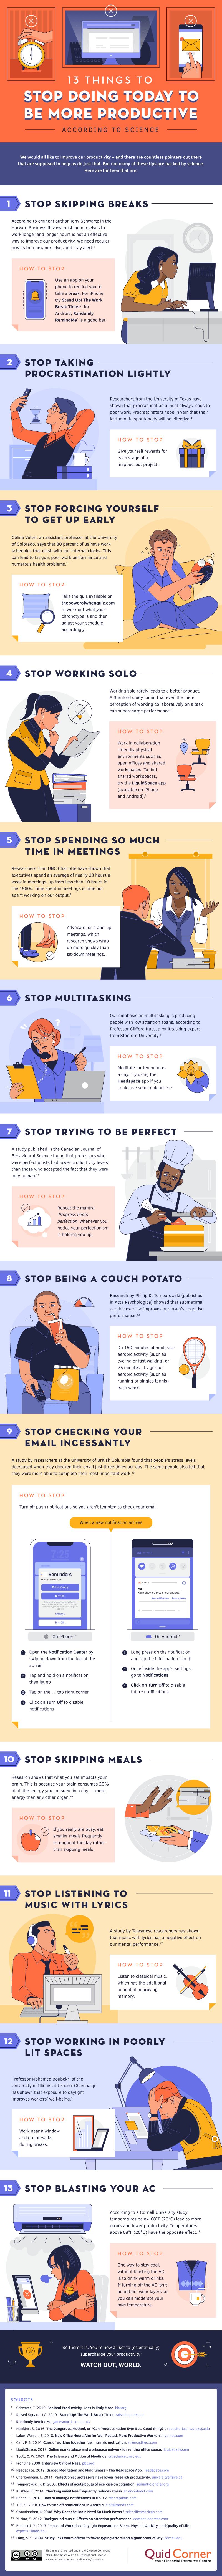 Infographic of 13 things to stop dong today.